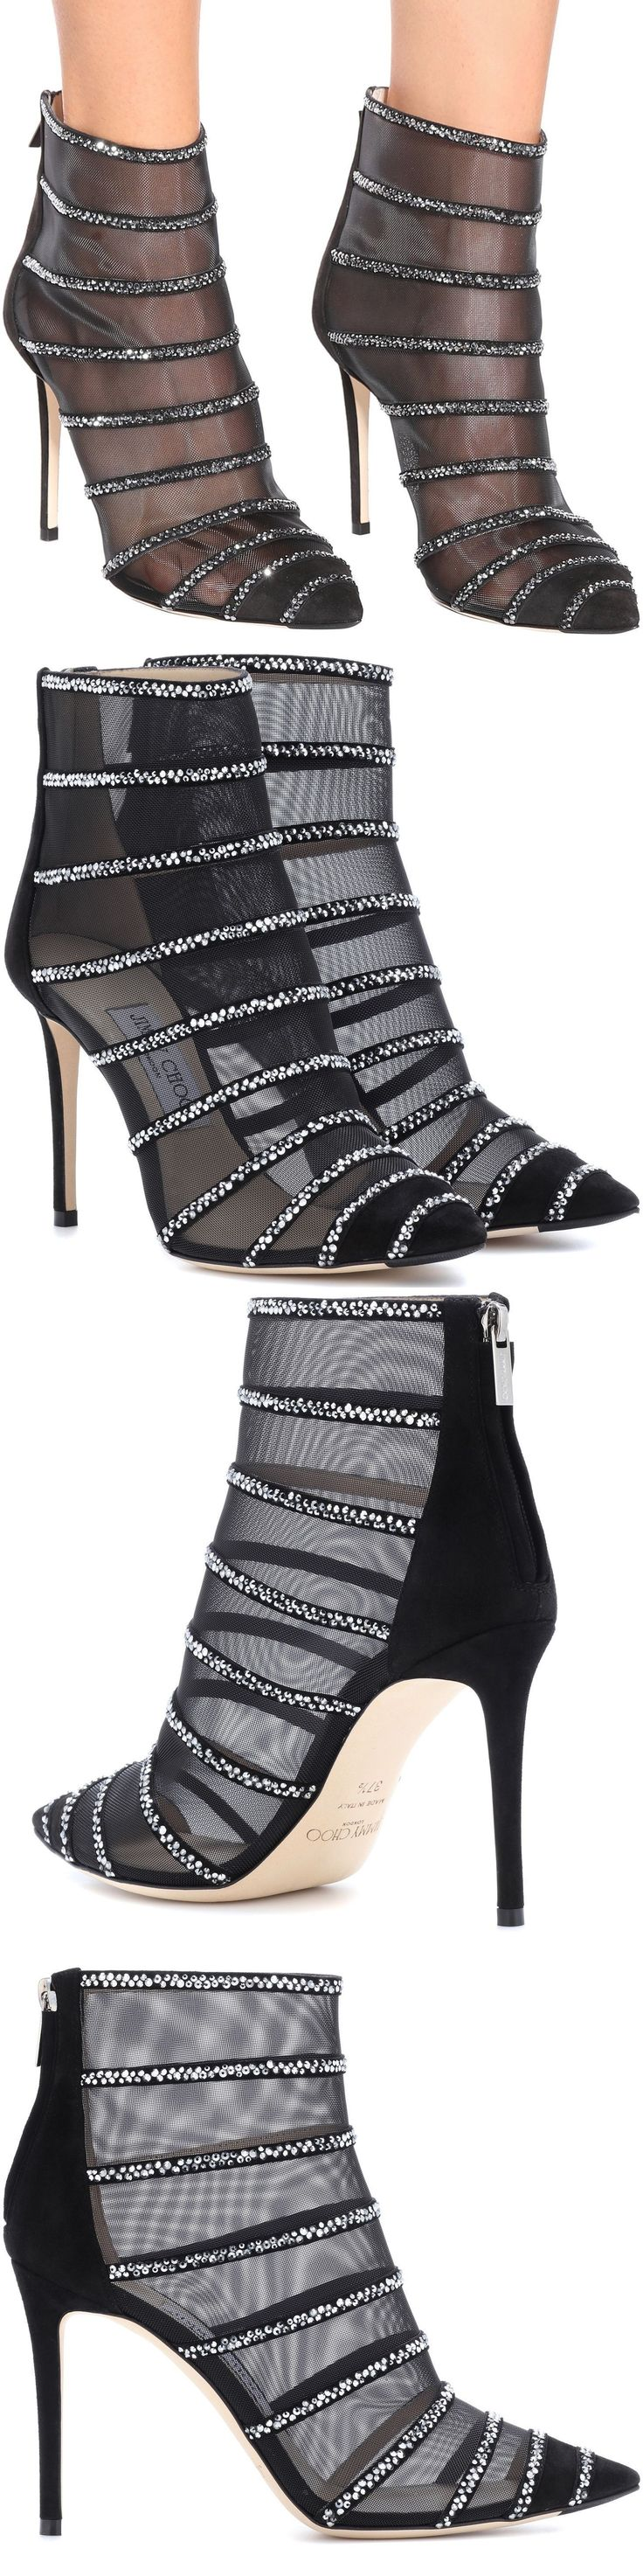 Jimmy Choo. Crafted in Italy